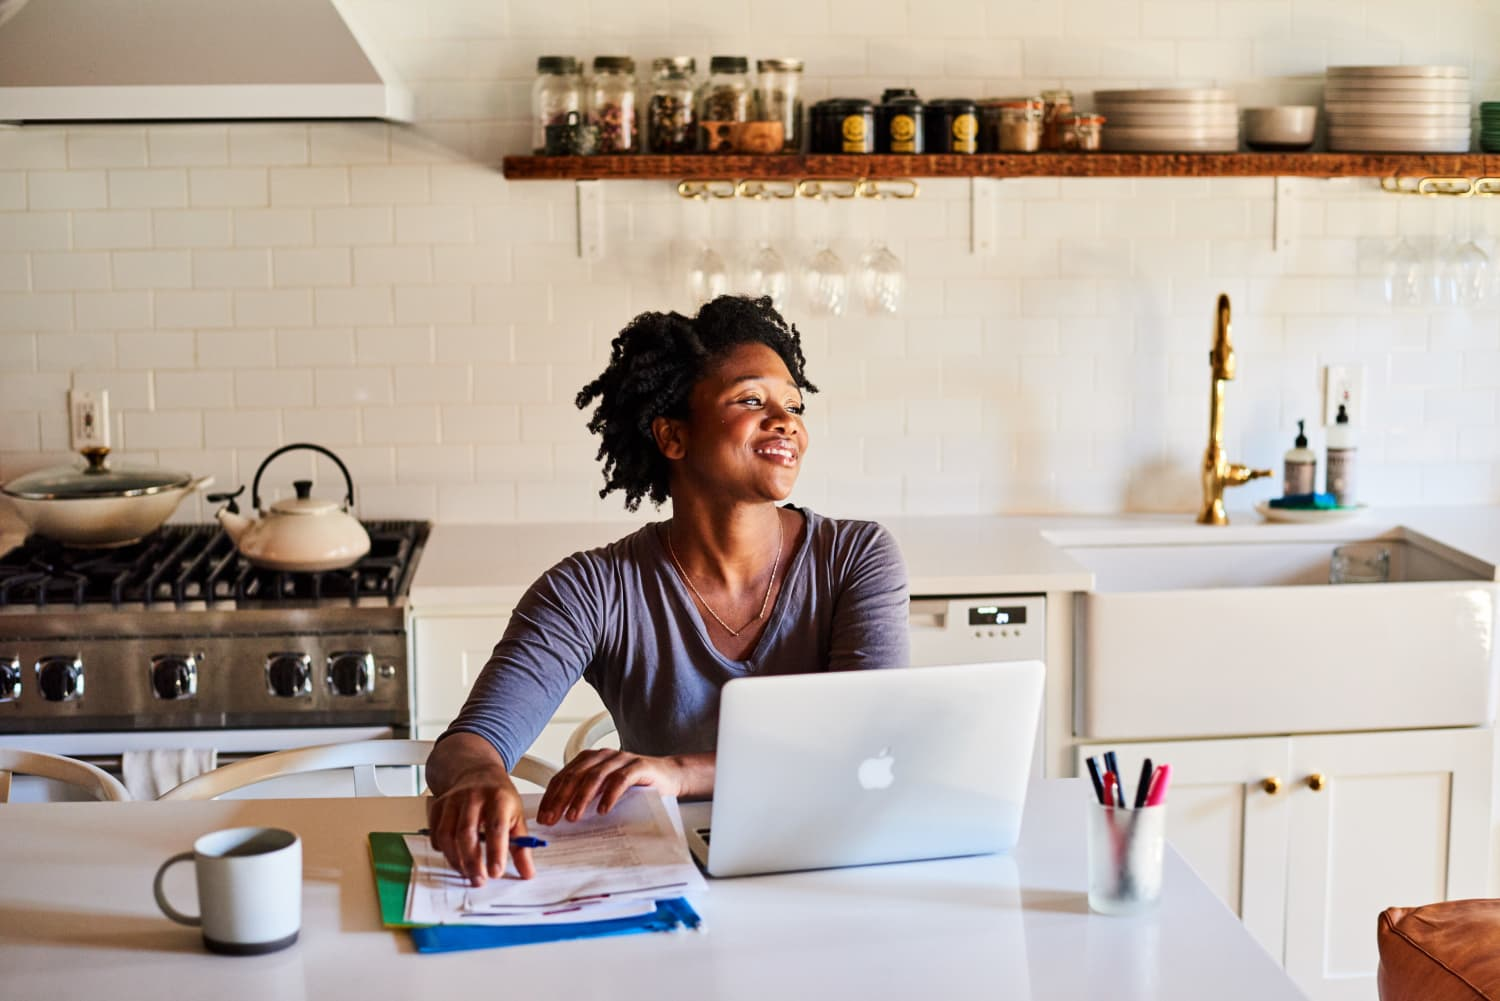 8 Work from Home Jobs That Allow You to Make a Difference From Your Couch